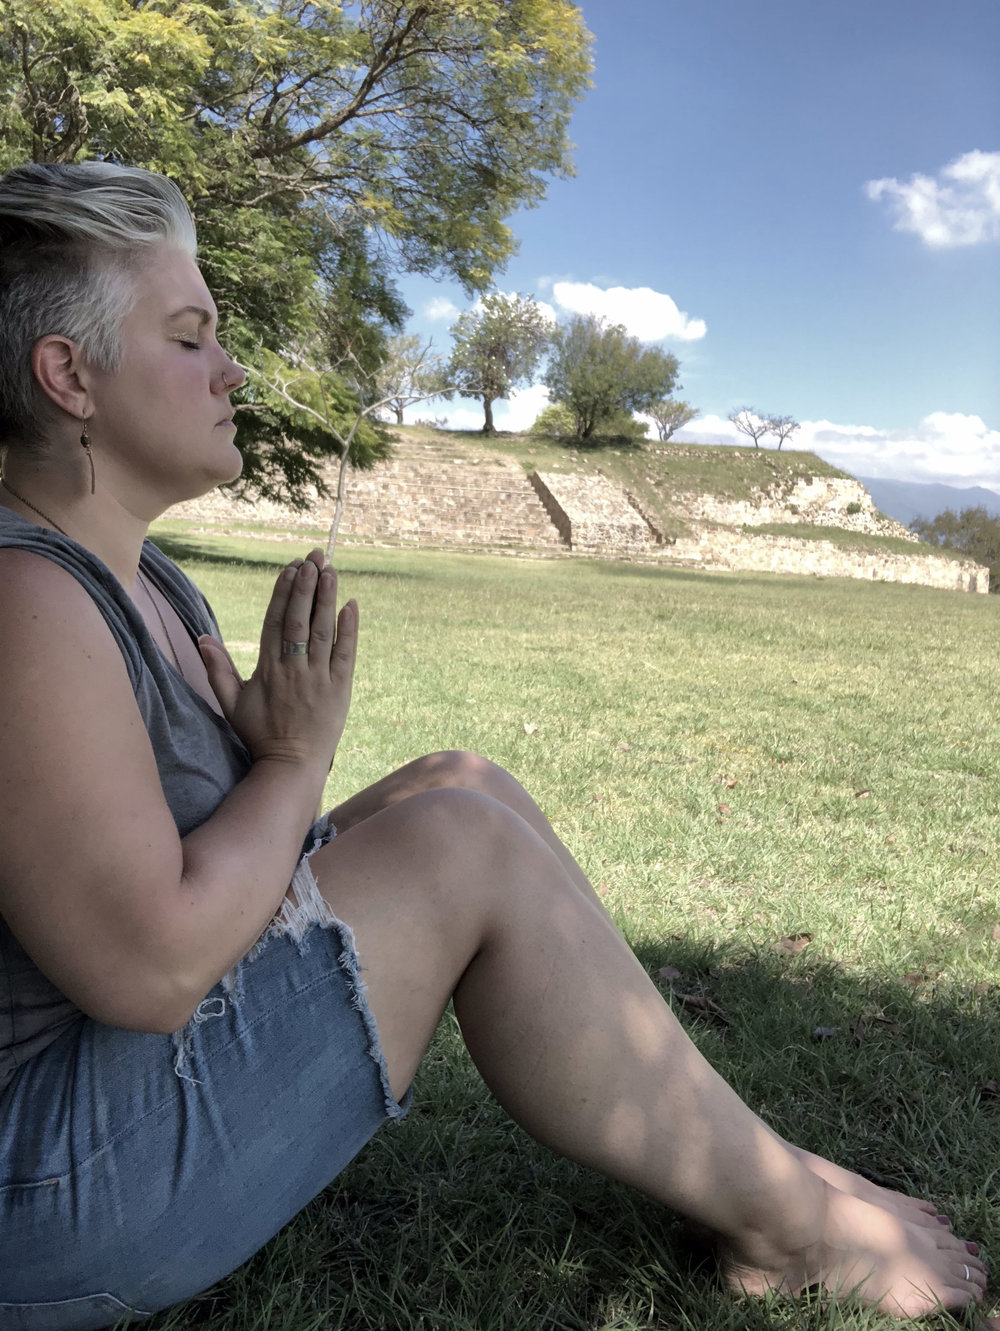 Taking a moment to connect with the Earth at Monte Alban, Oaxaca City.